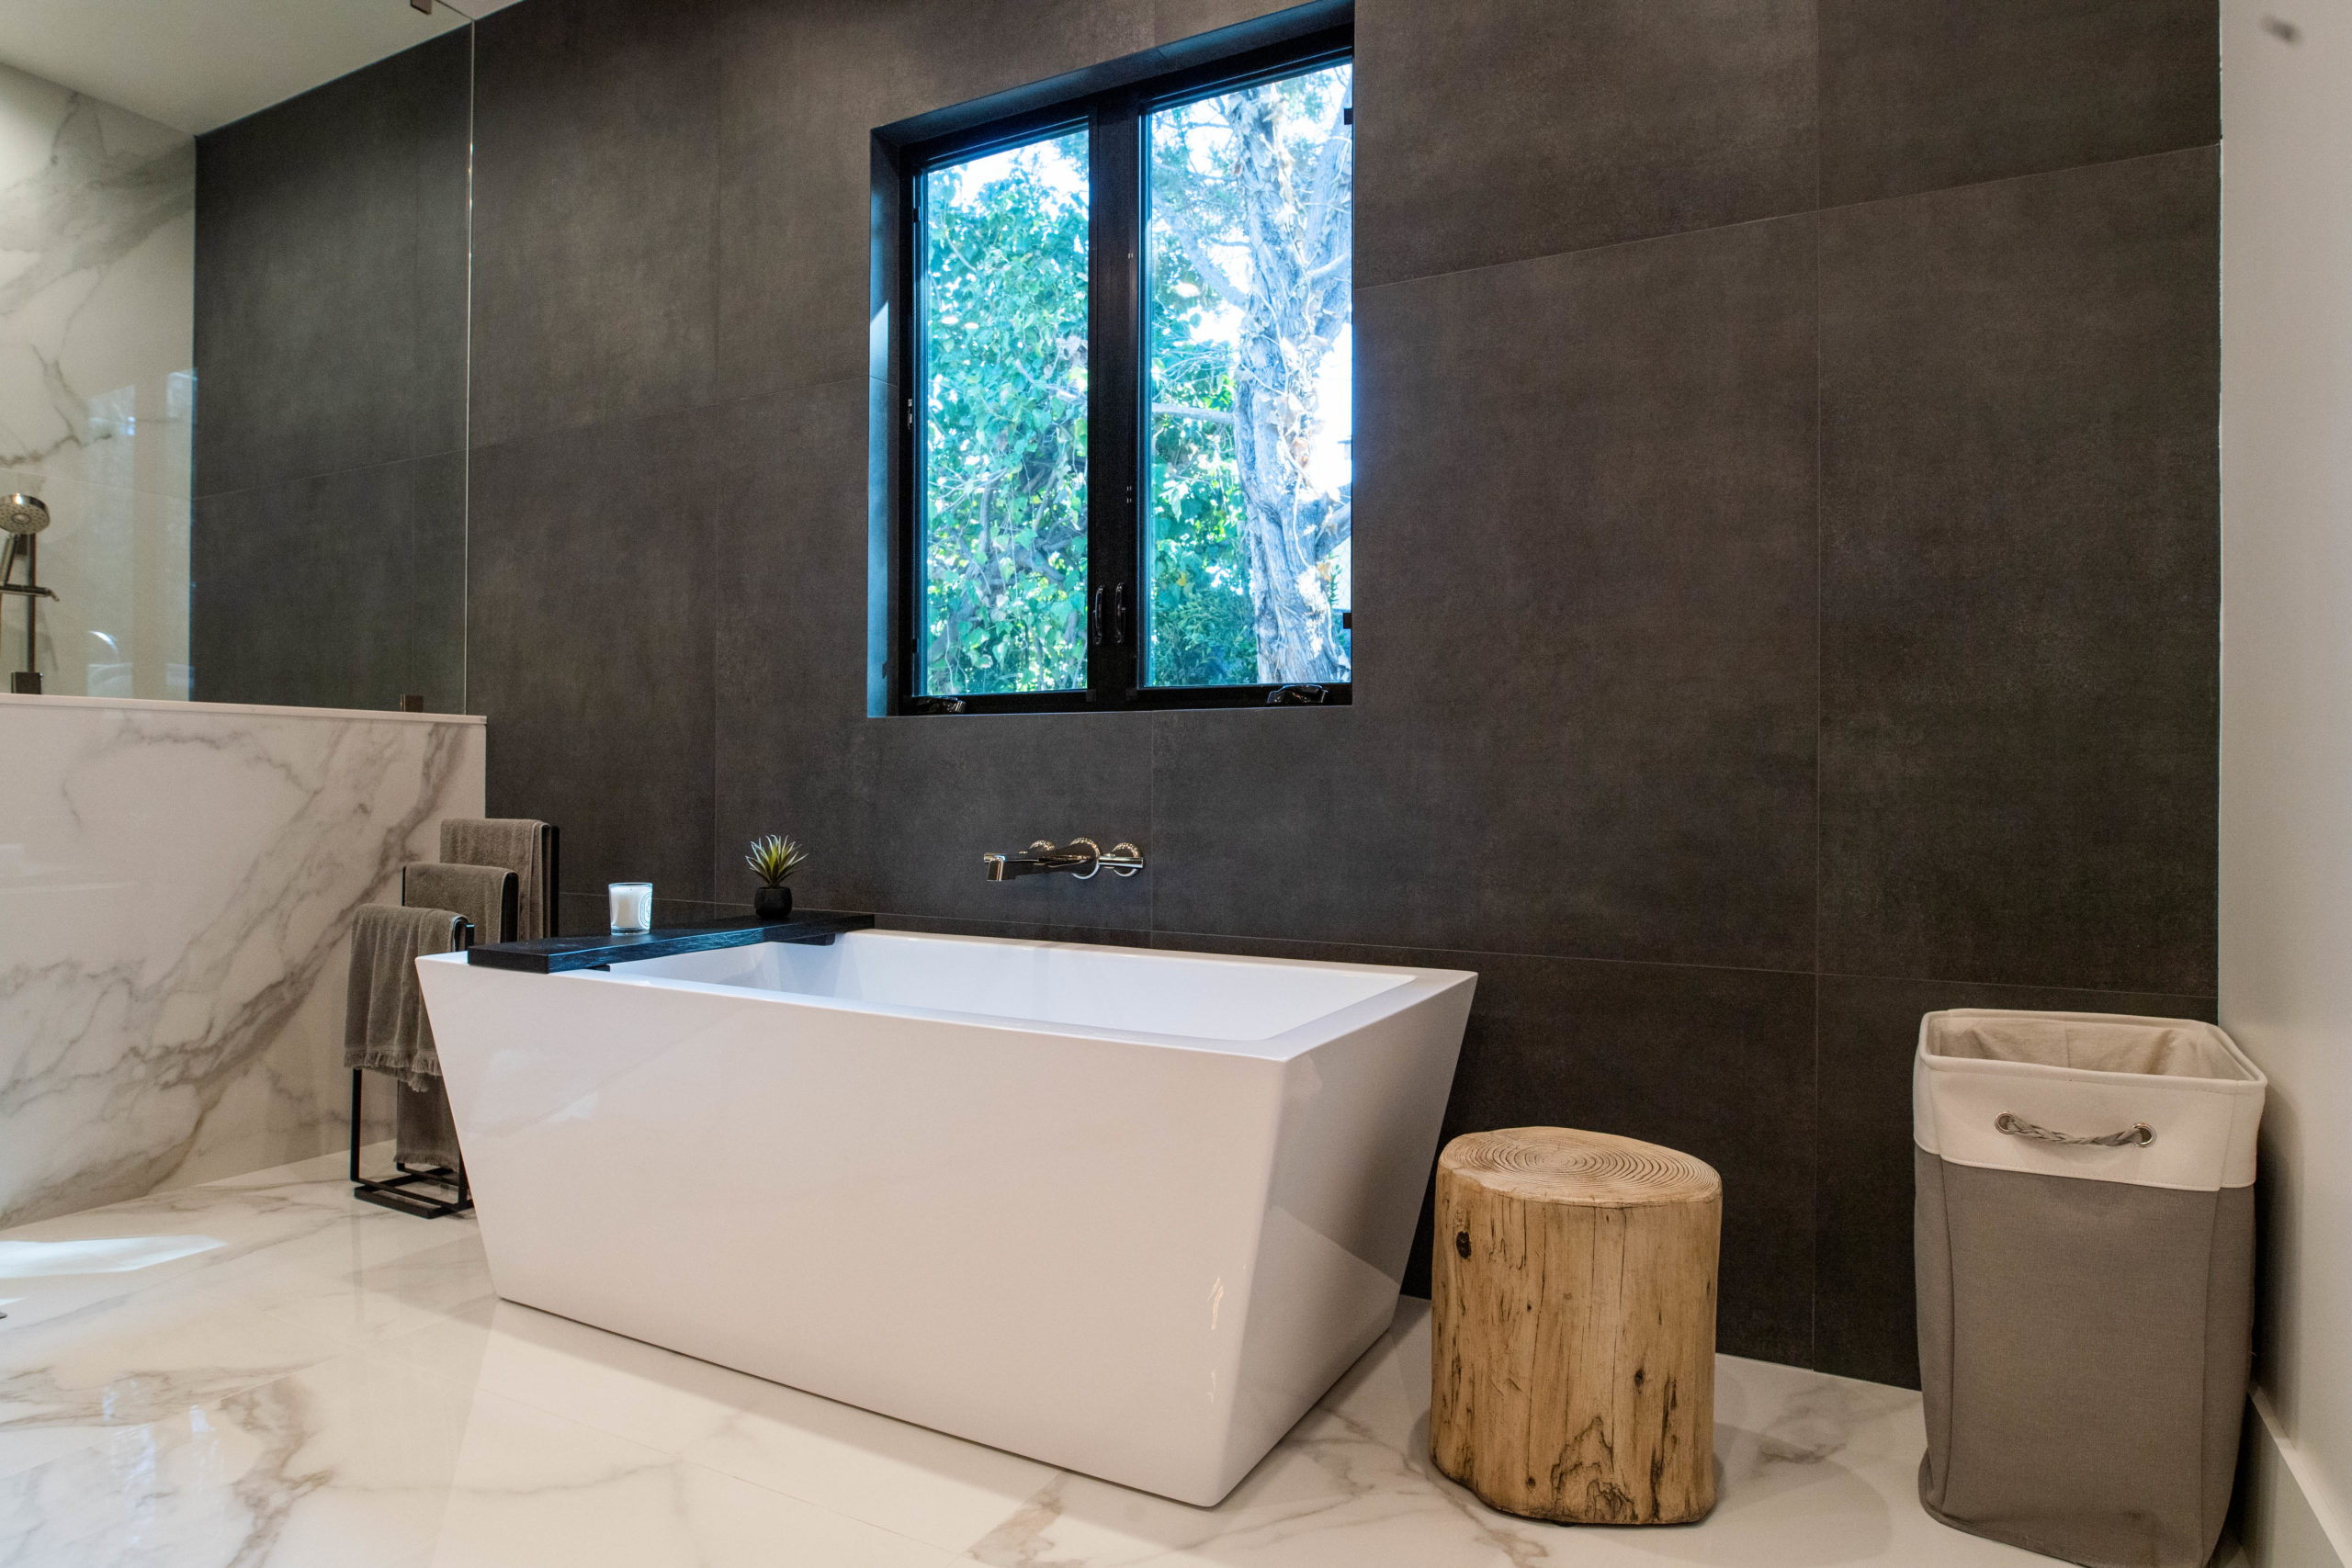 A home after a bathroom remodeling project.